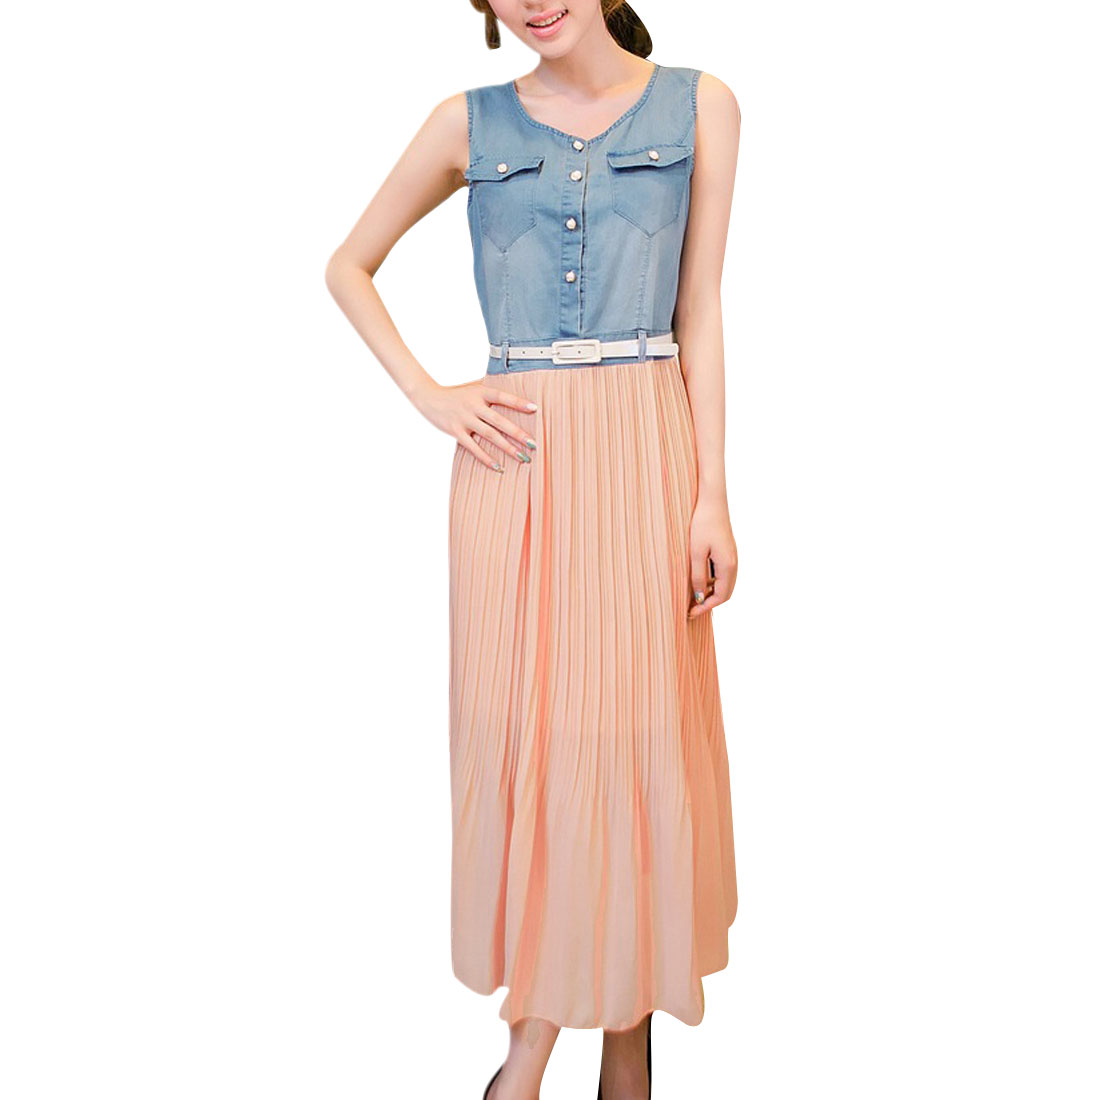 Woman Round Neck Button Front Blue Denim Upper Light Pink Chifon Dress XS